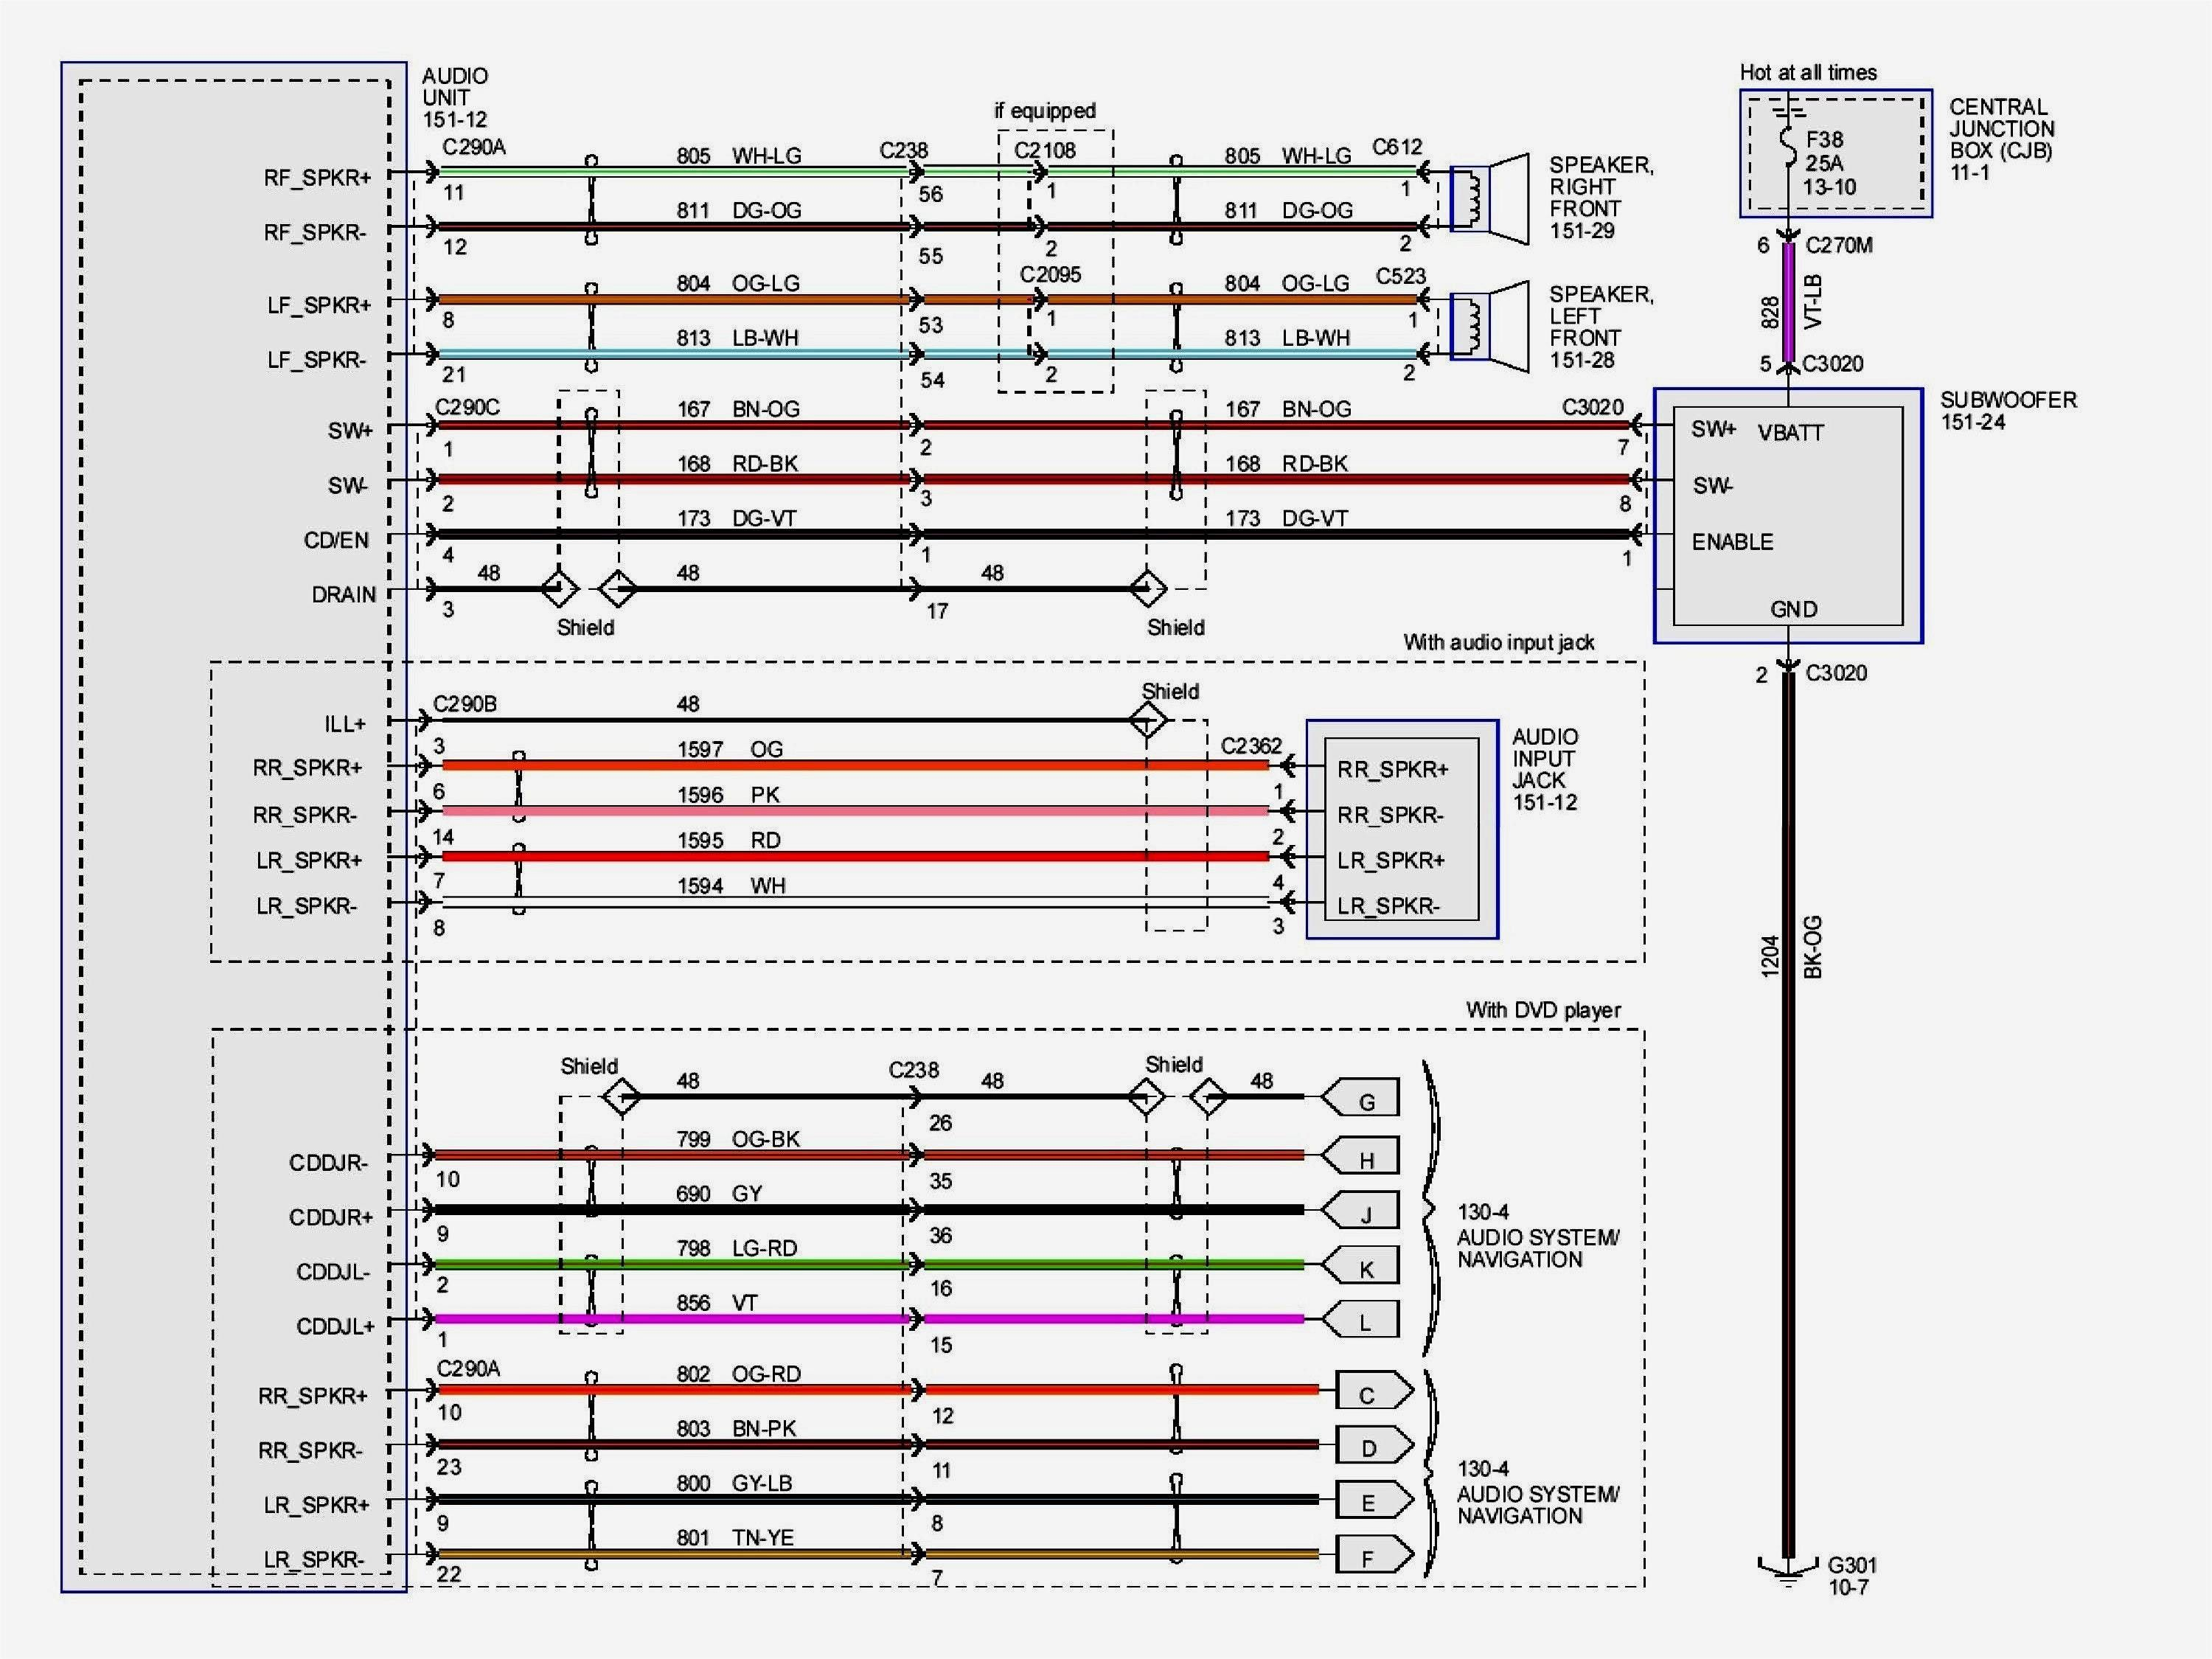 2007 Ford Escape Engine Diagram Electrical Wiring Diagram Trailer Wiring Diagram Diagram